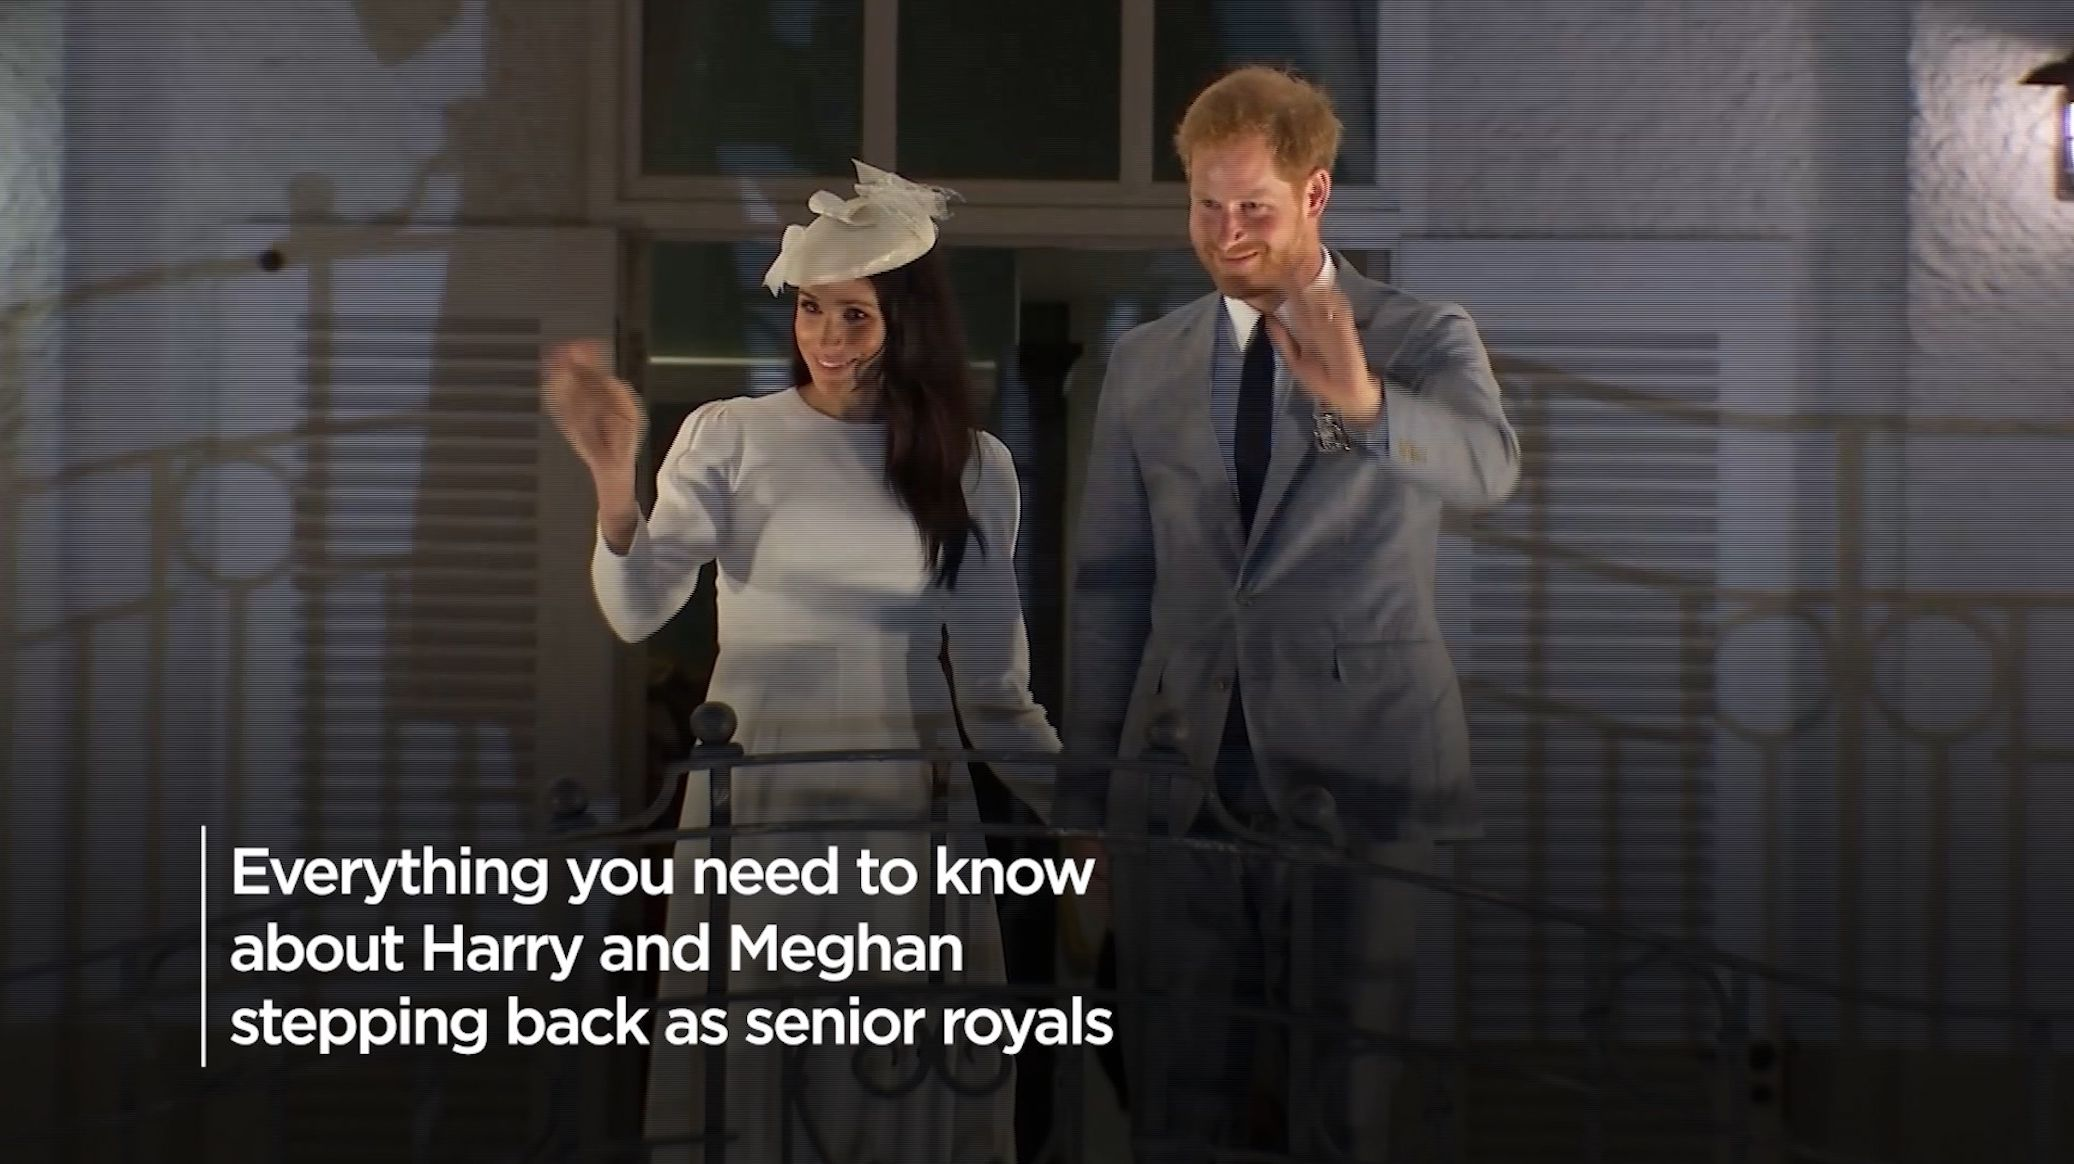 Meghan Markle And Prince Harry Reportedly Move To Los Angeles Following Canada Stay